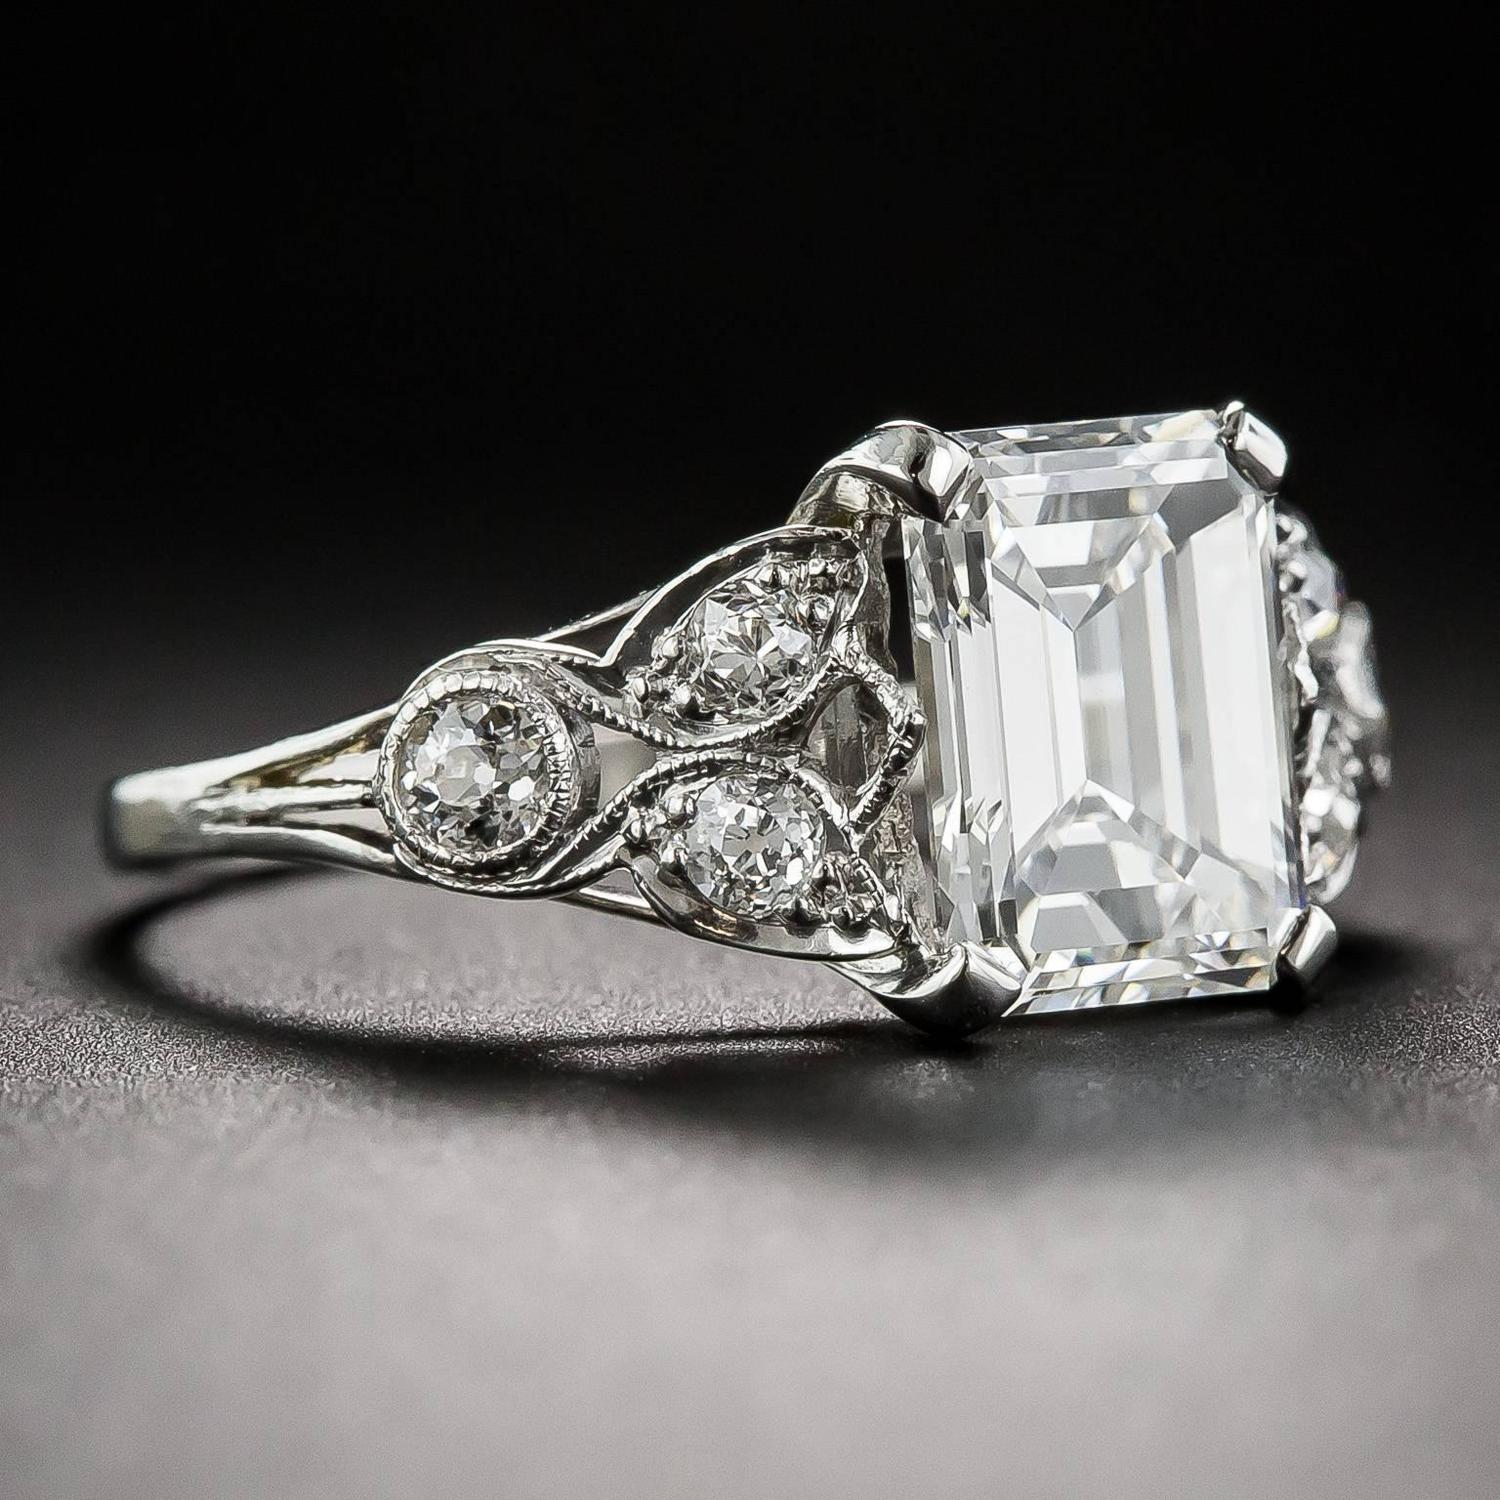 Art Deco 2 03 Carat GIA Cert Emerald Cut Diamond Engagement Ring For Sale at